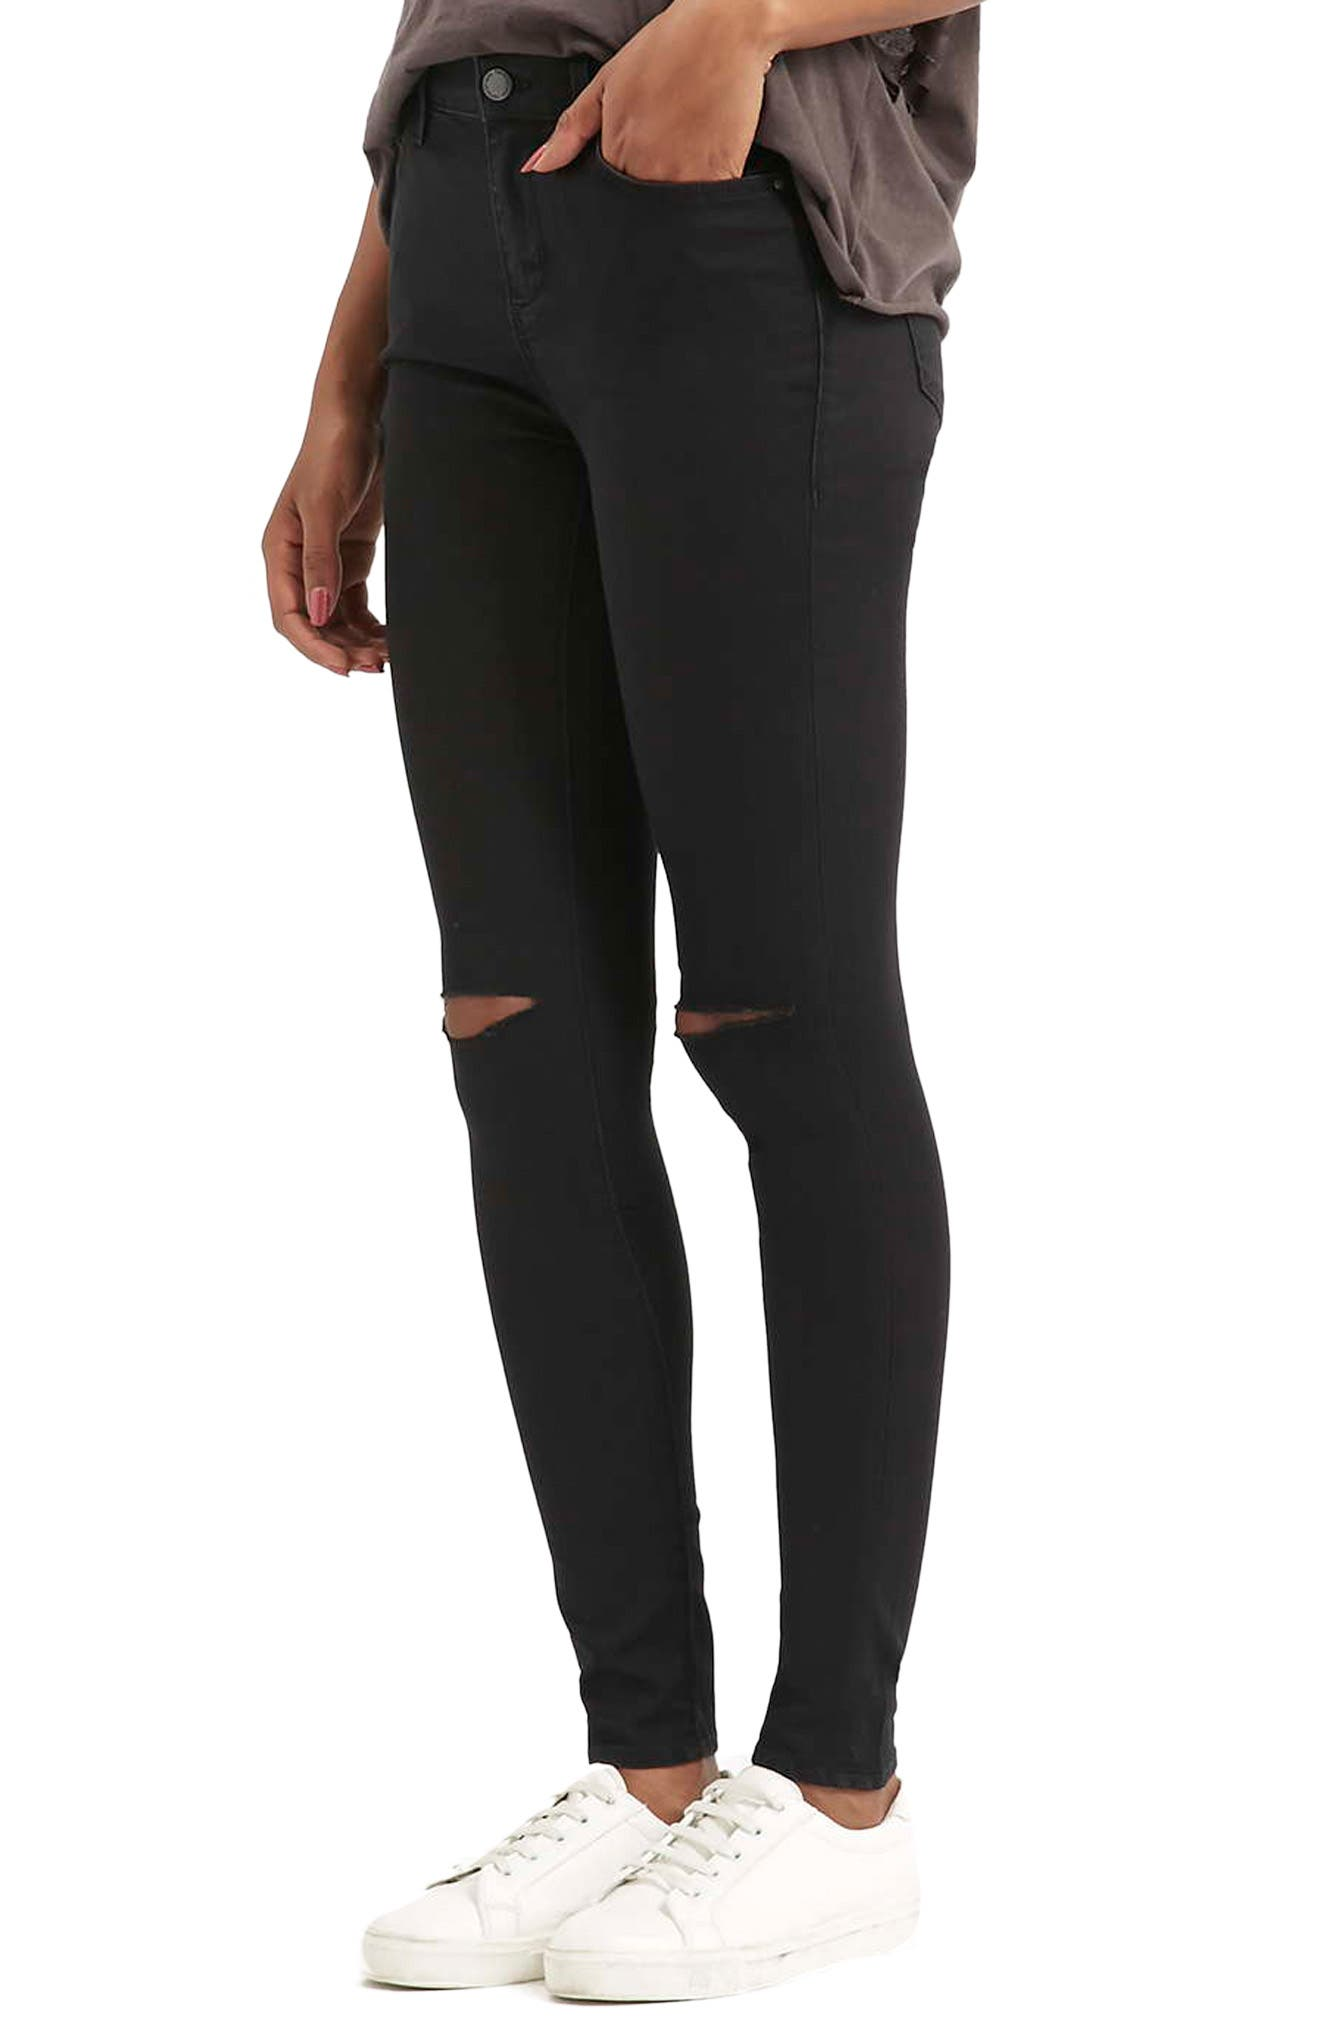 Topshop Moto Leigh Ripped Skinny Jeans | Nordstrom